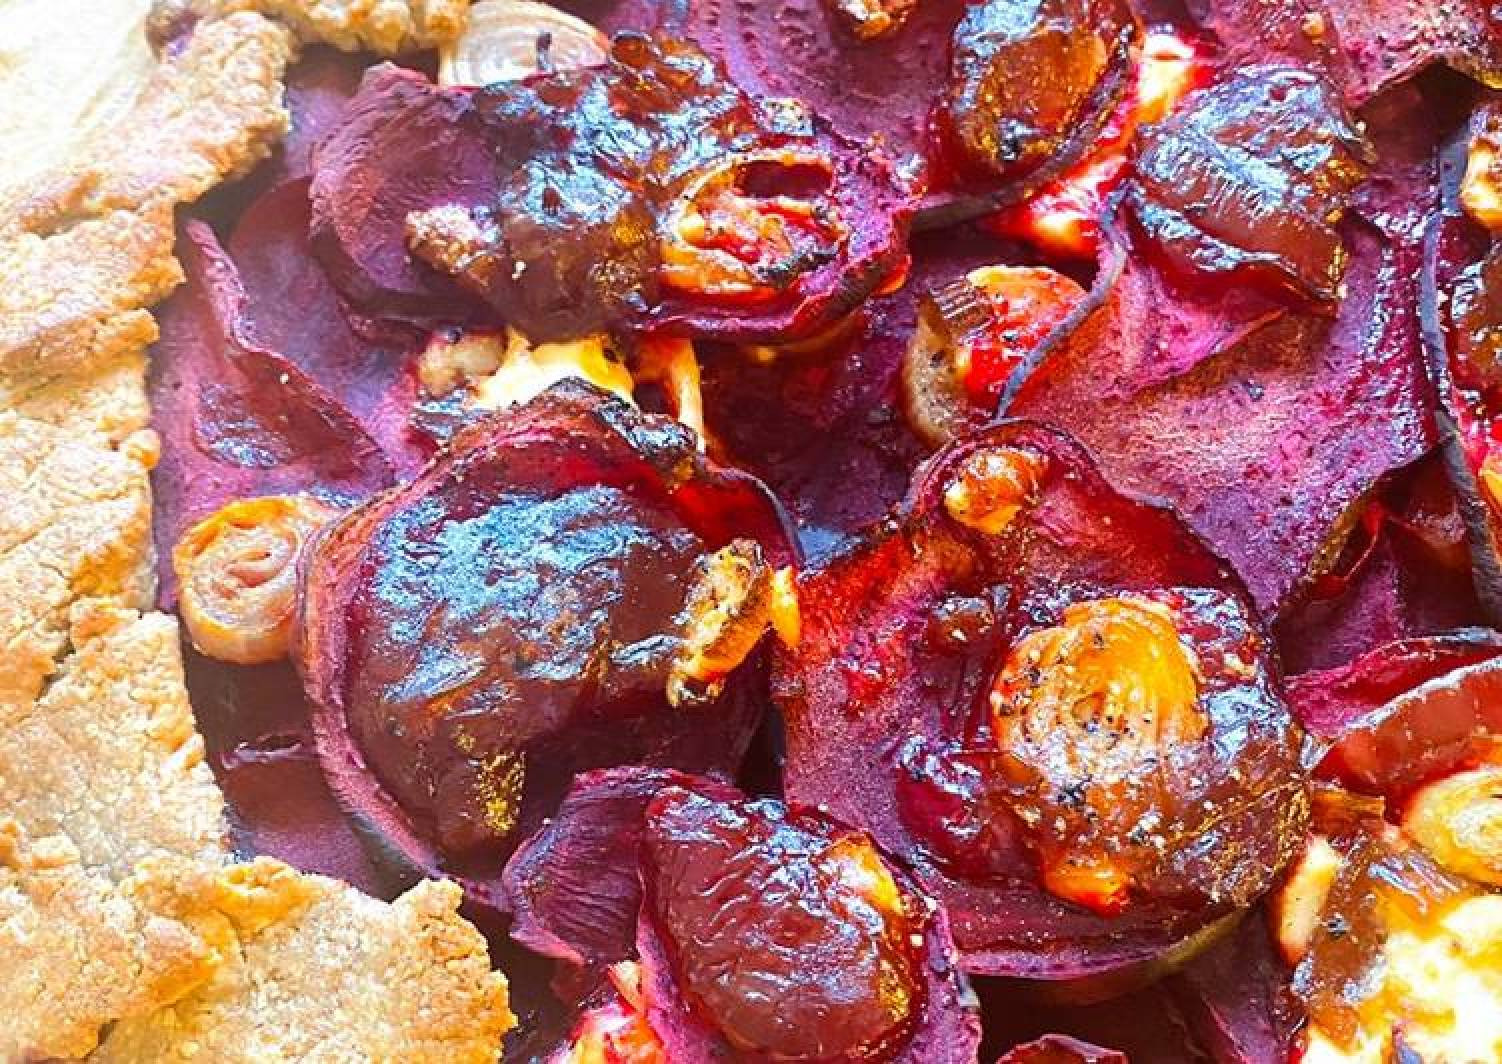 Beetroot,feta & caramelised onion tart😋😋😋